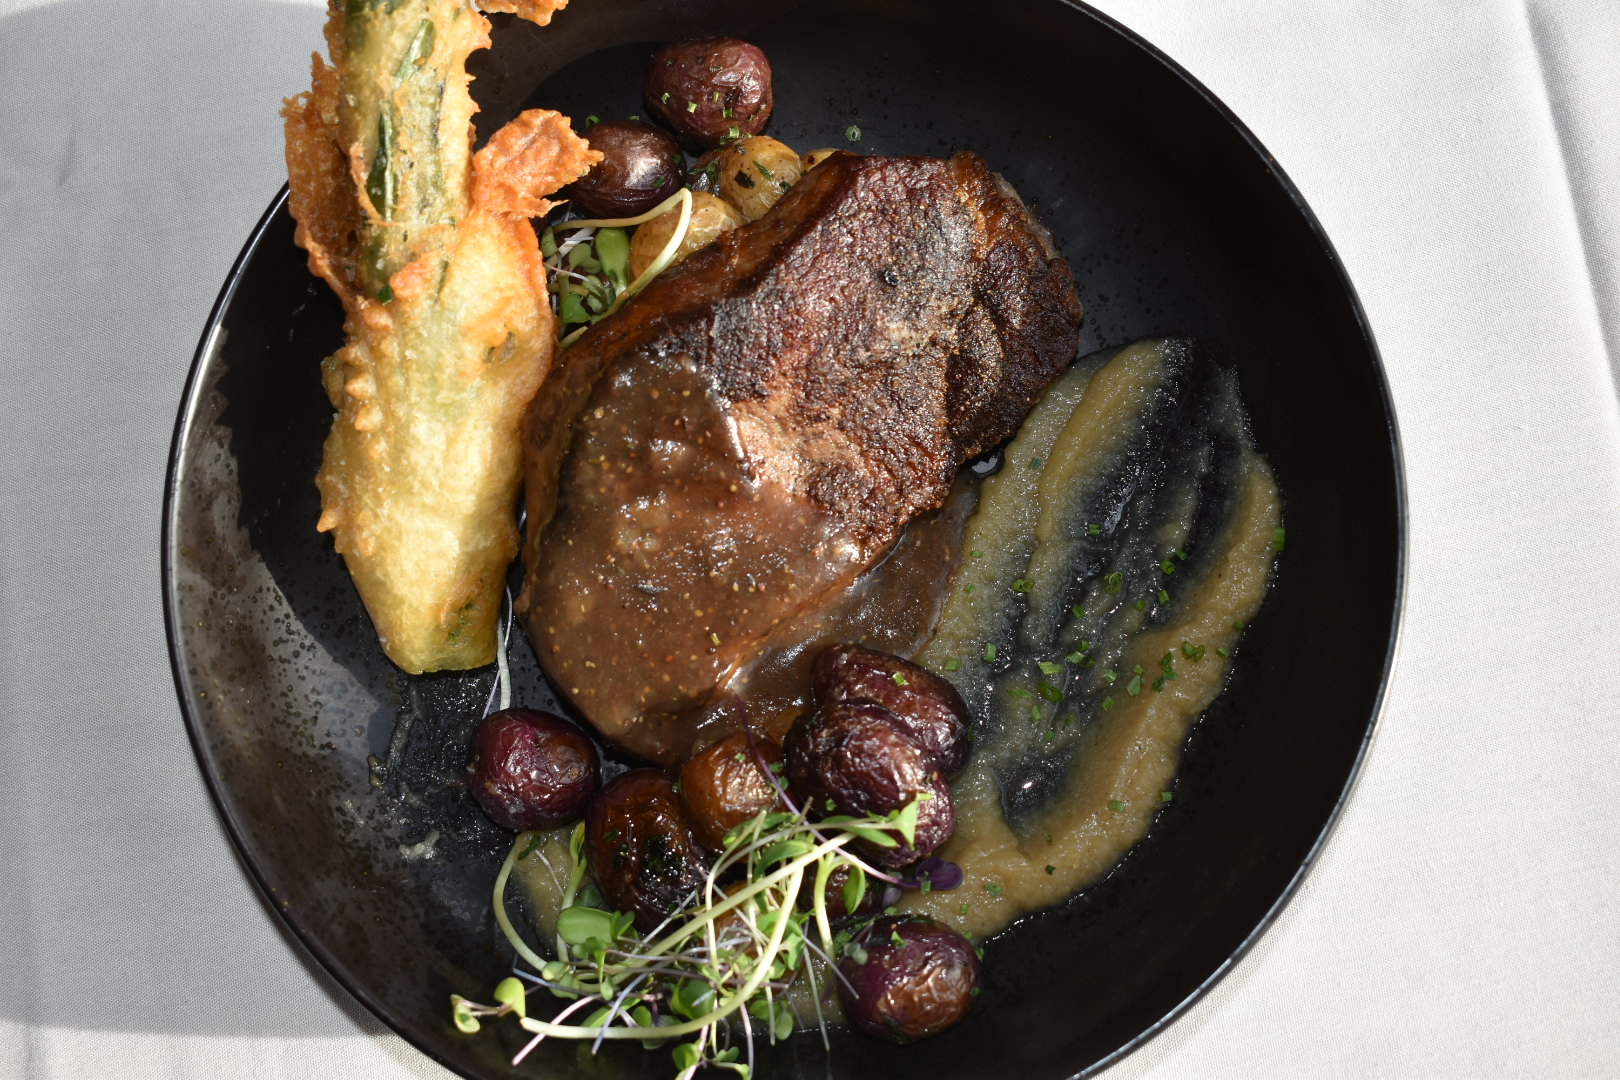 Plate of food featuring a New York Strip steak, battered leek, potatoes, and greens